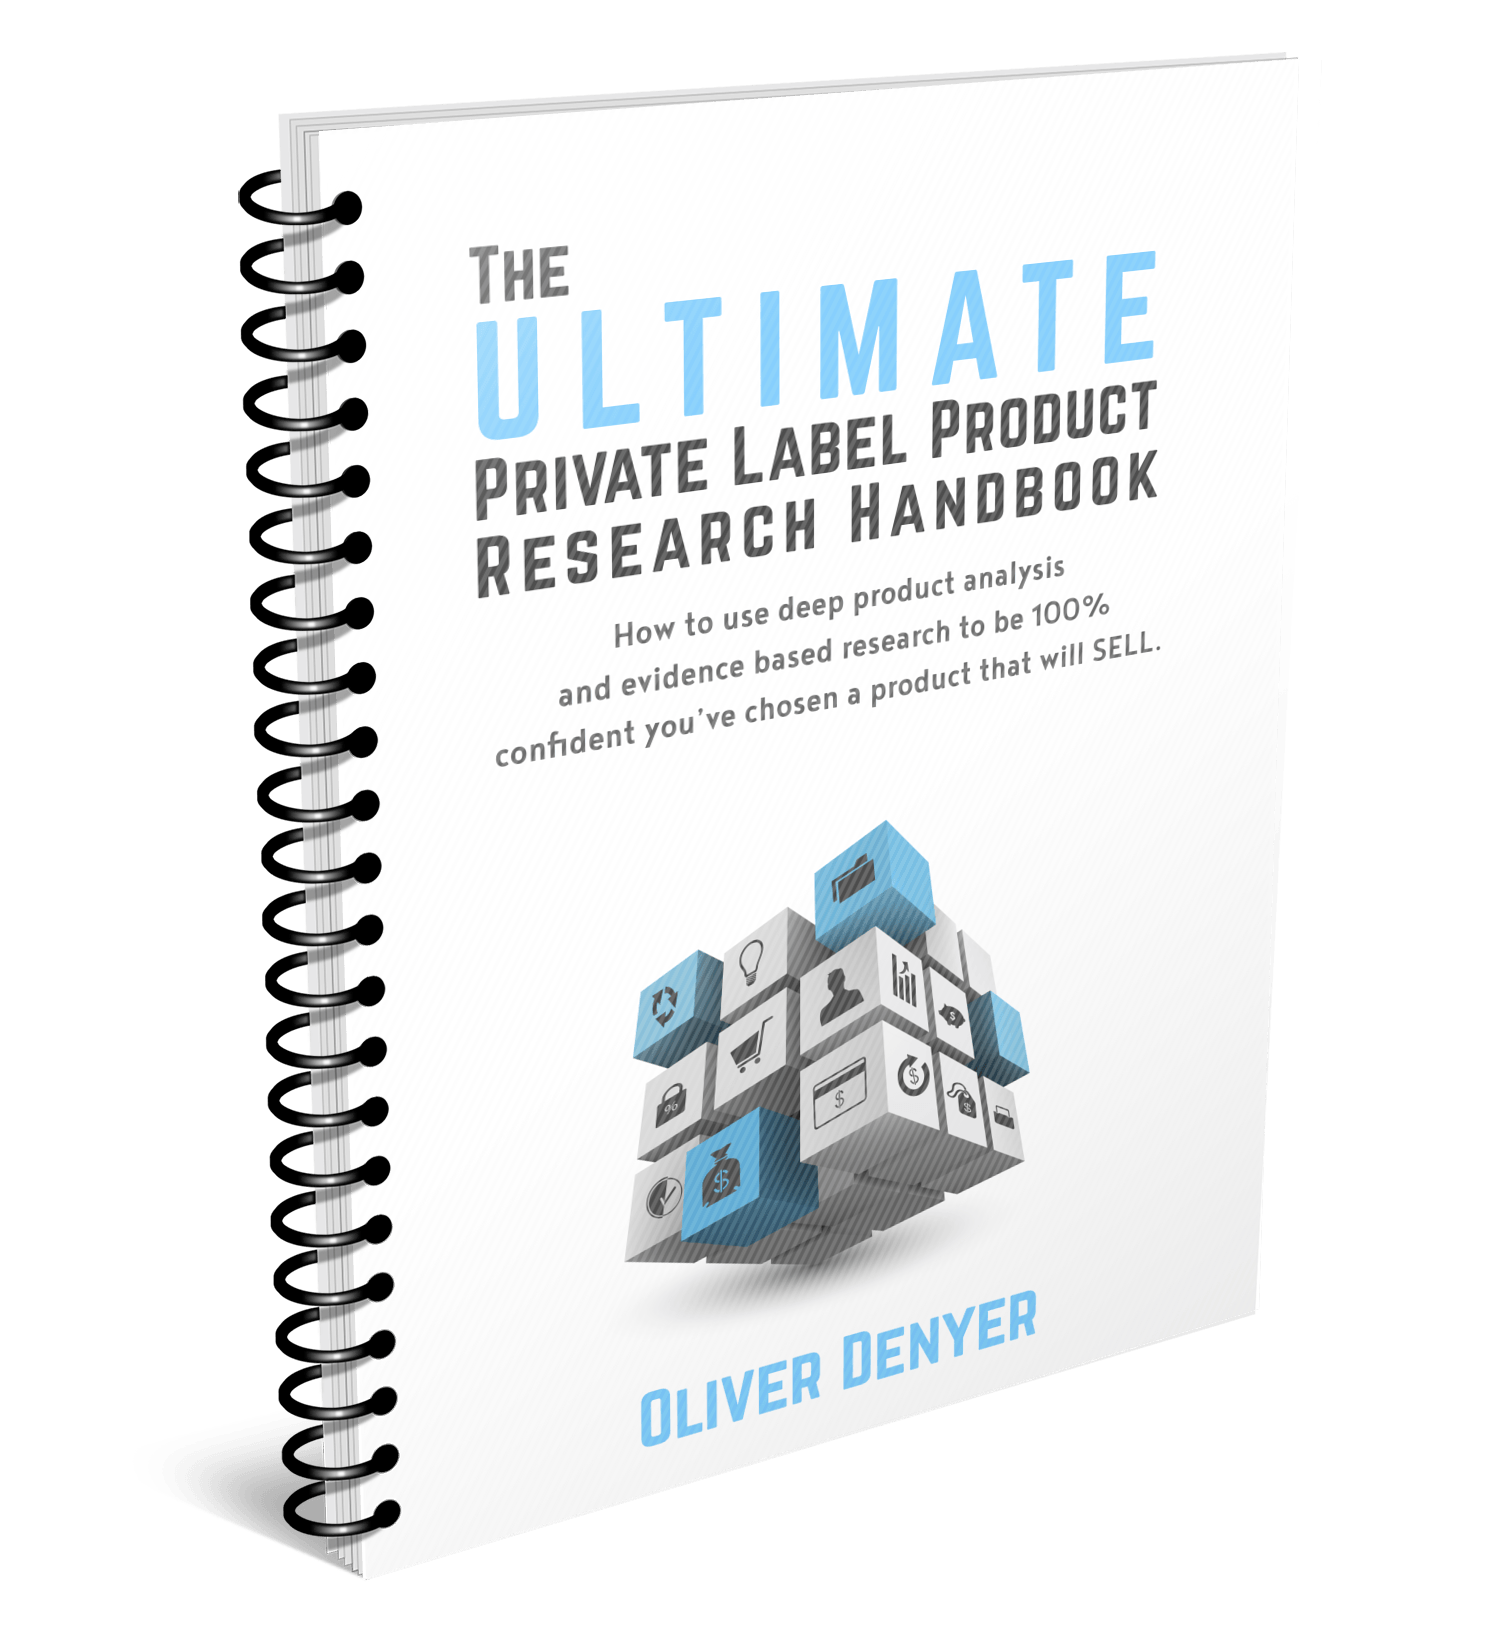 PL Product Research Handbook